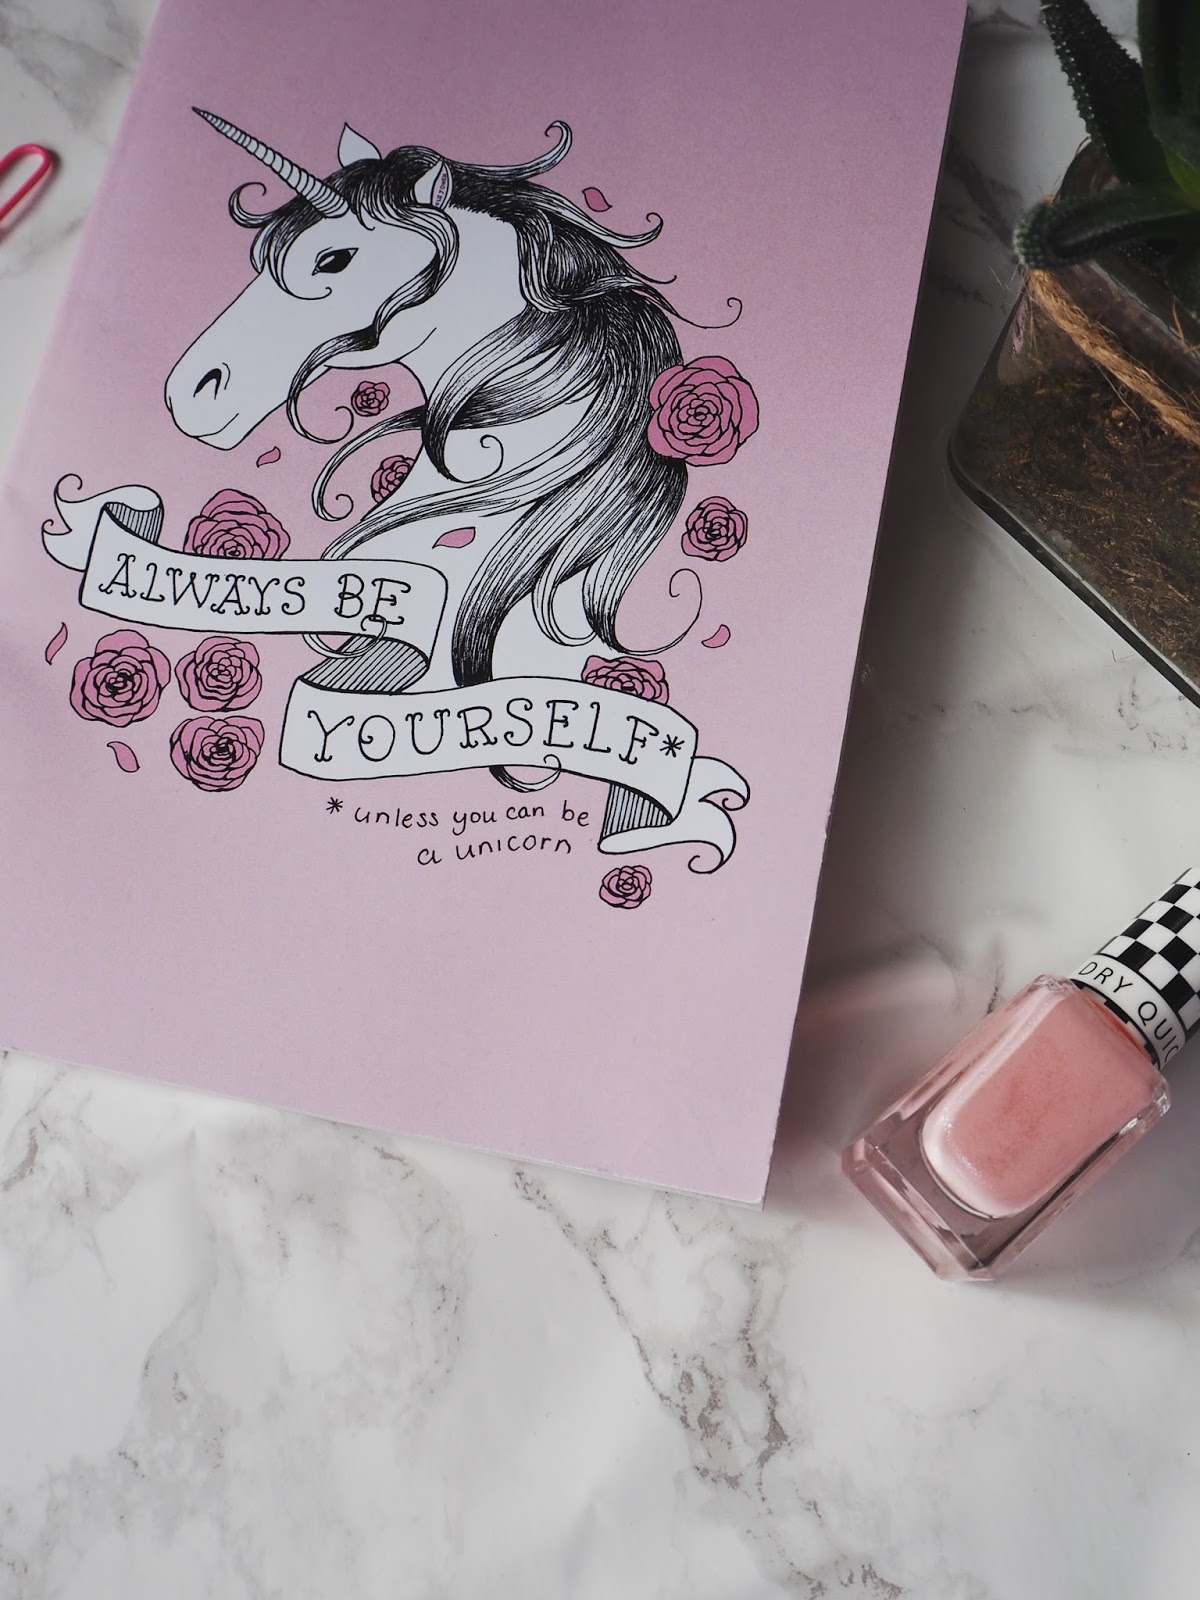 ALWAYS BE YOURSELF Unless you can be a unicorn | www.lovemaisie.com | Love, Maisie